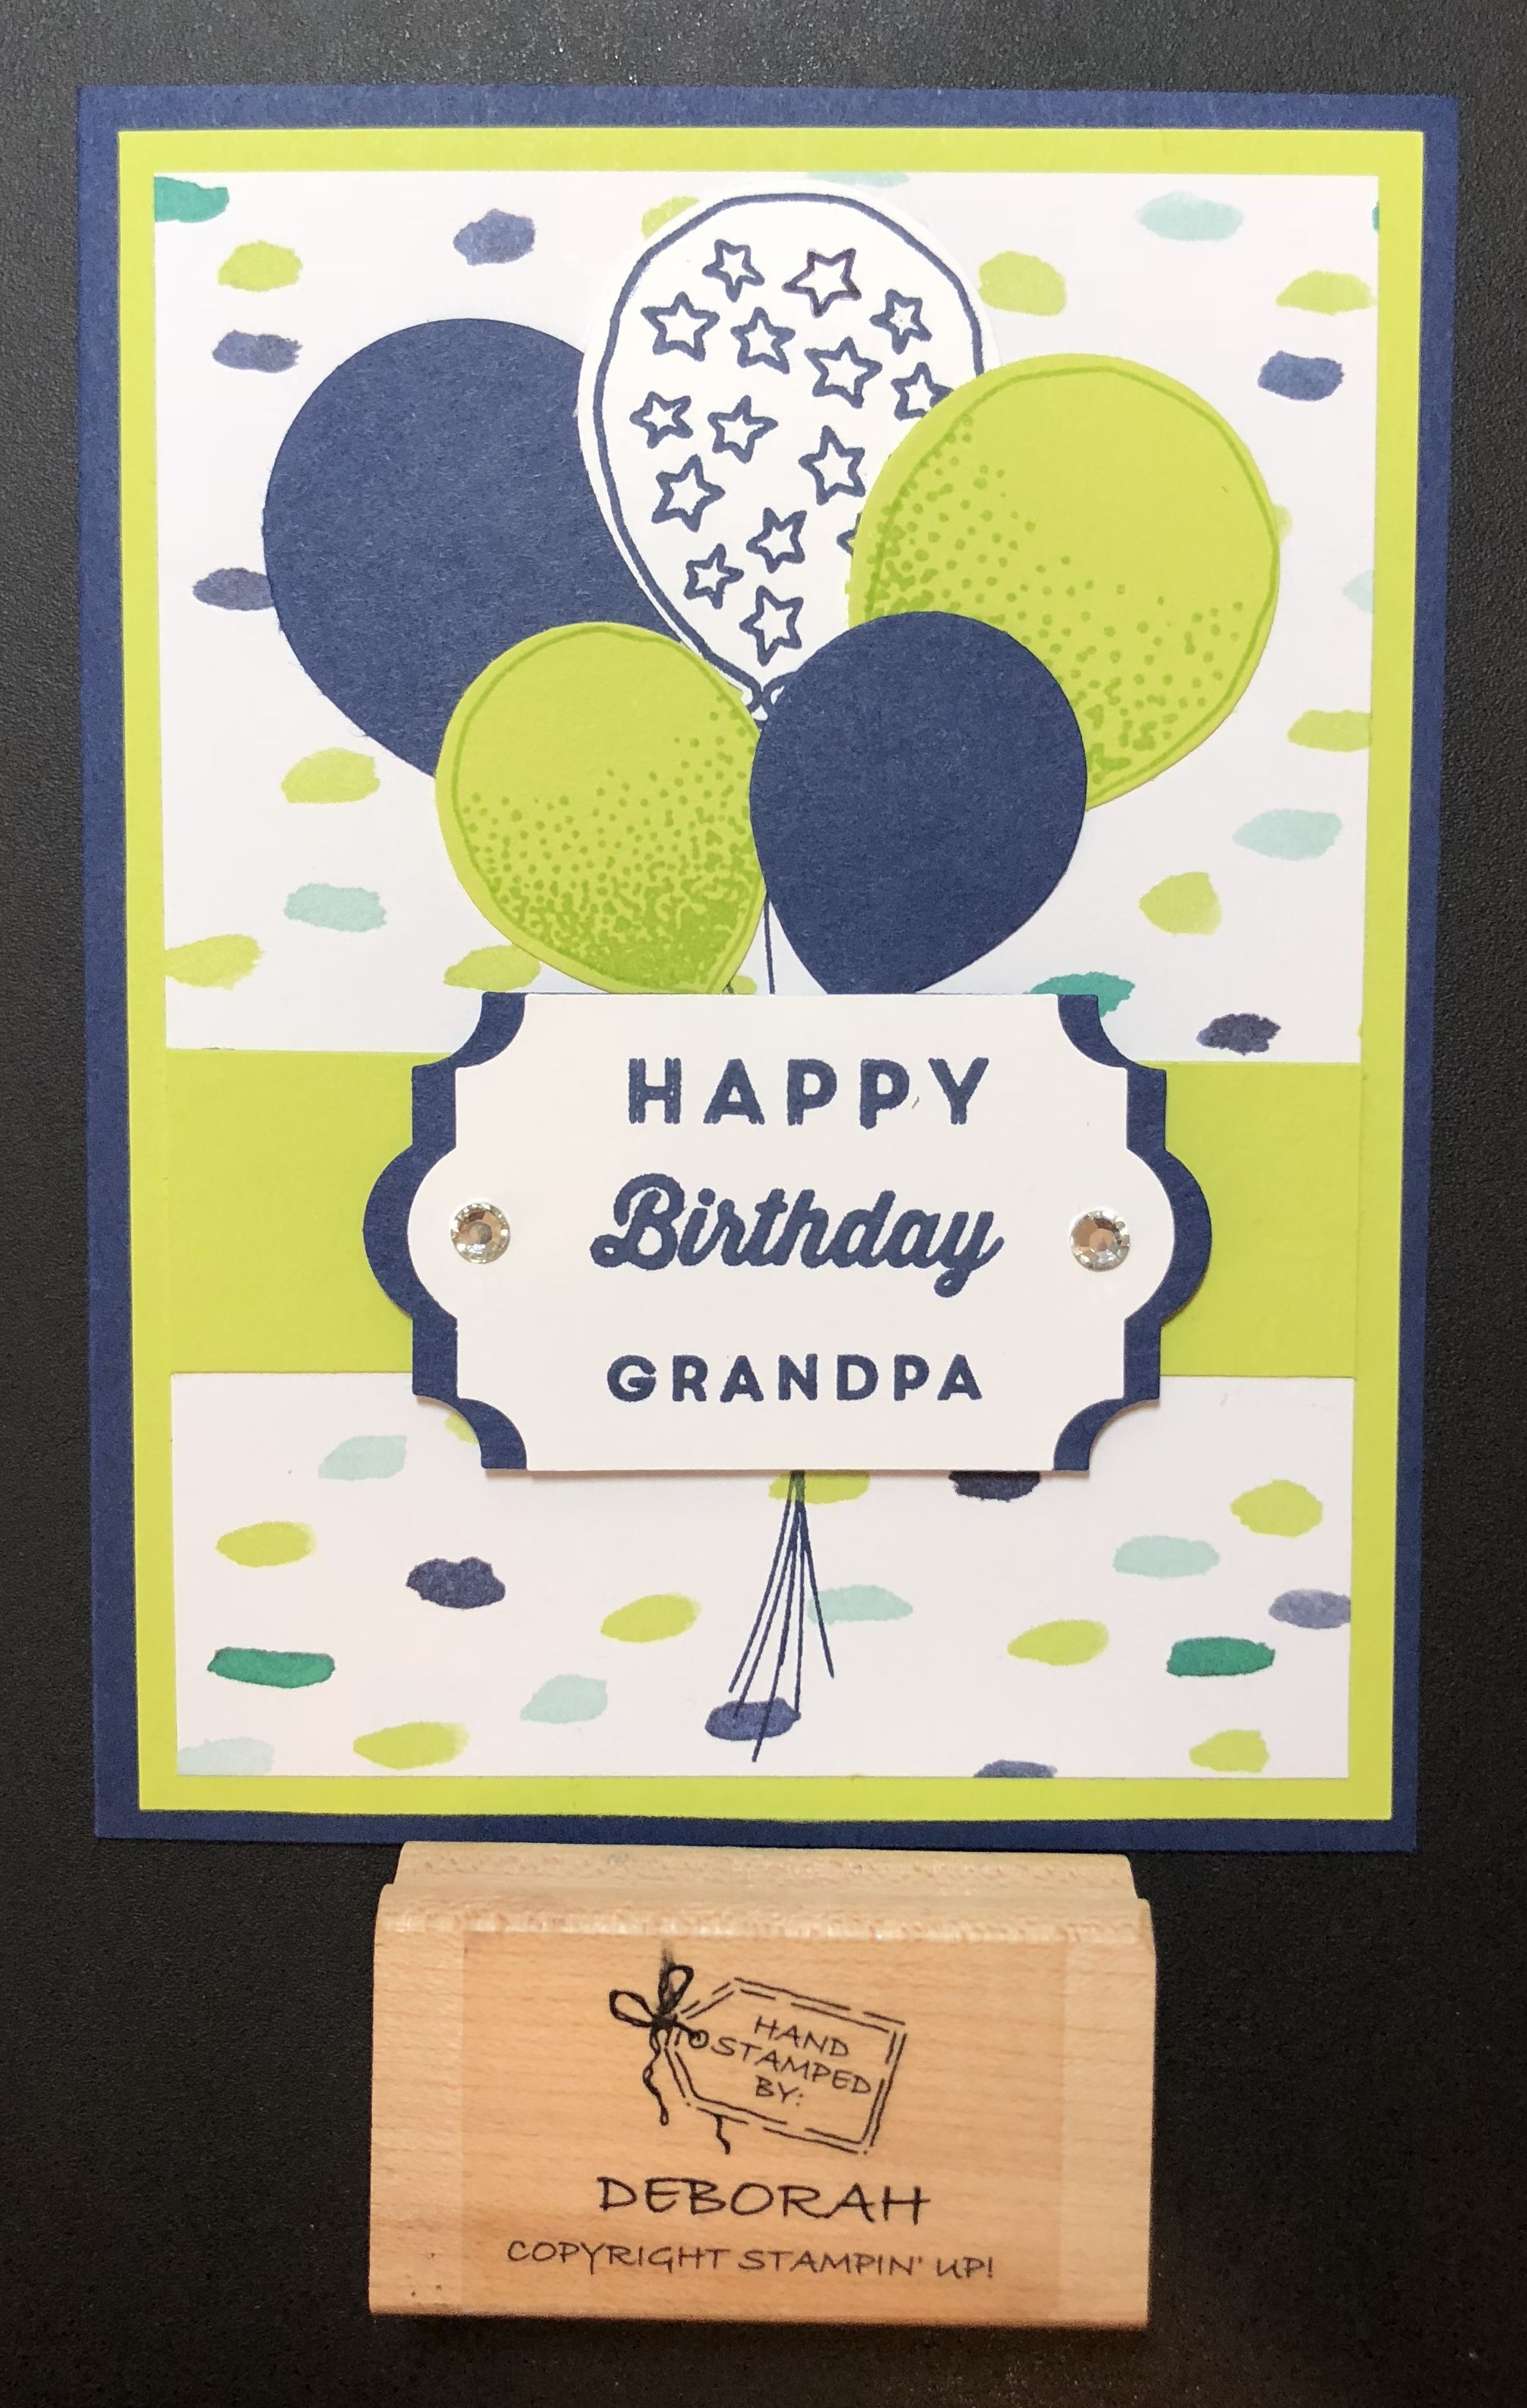 A birthday card for grandpa using balloon celebration and manly